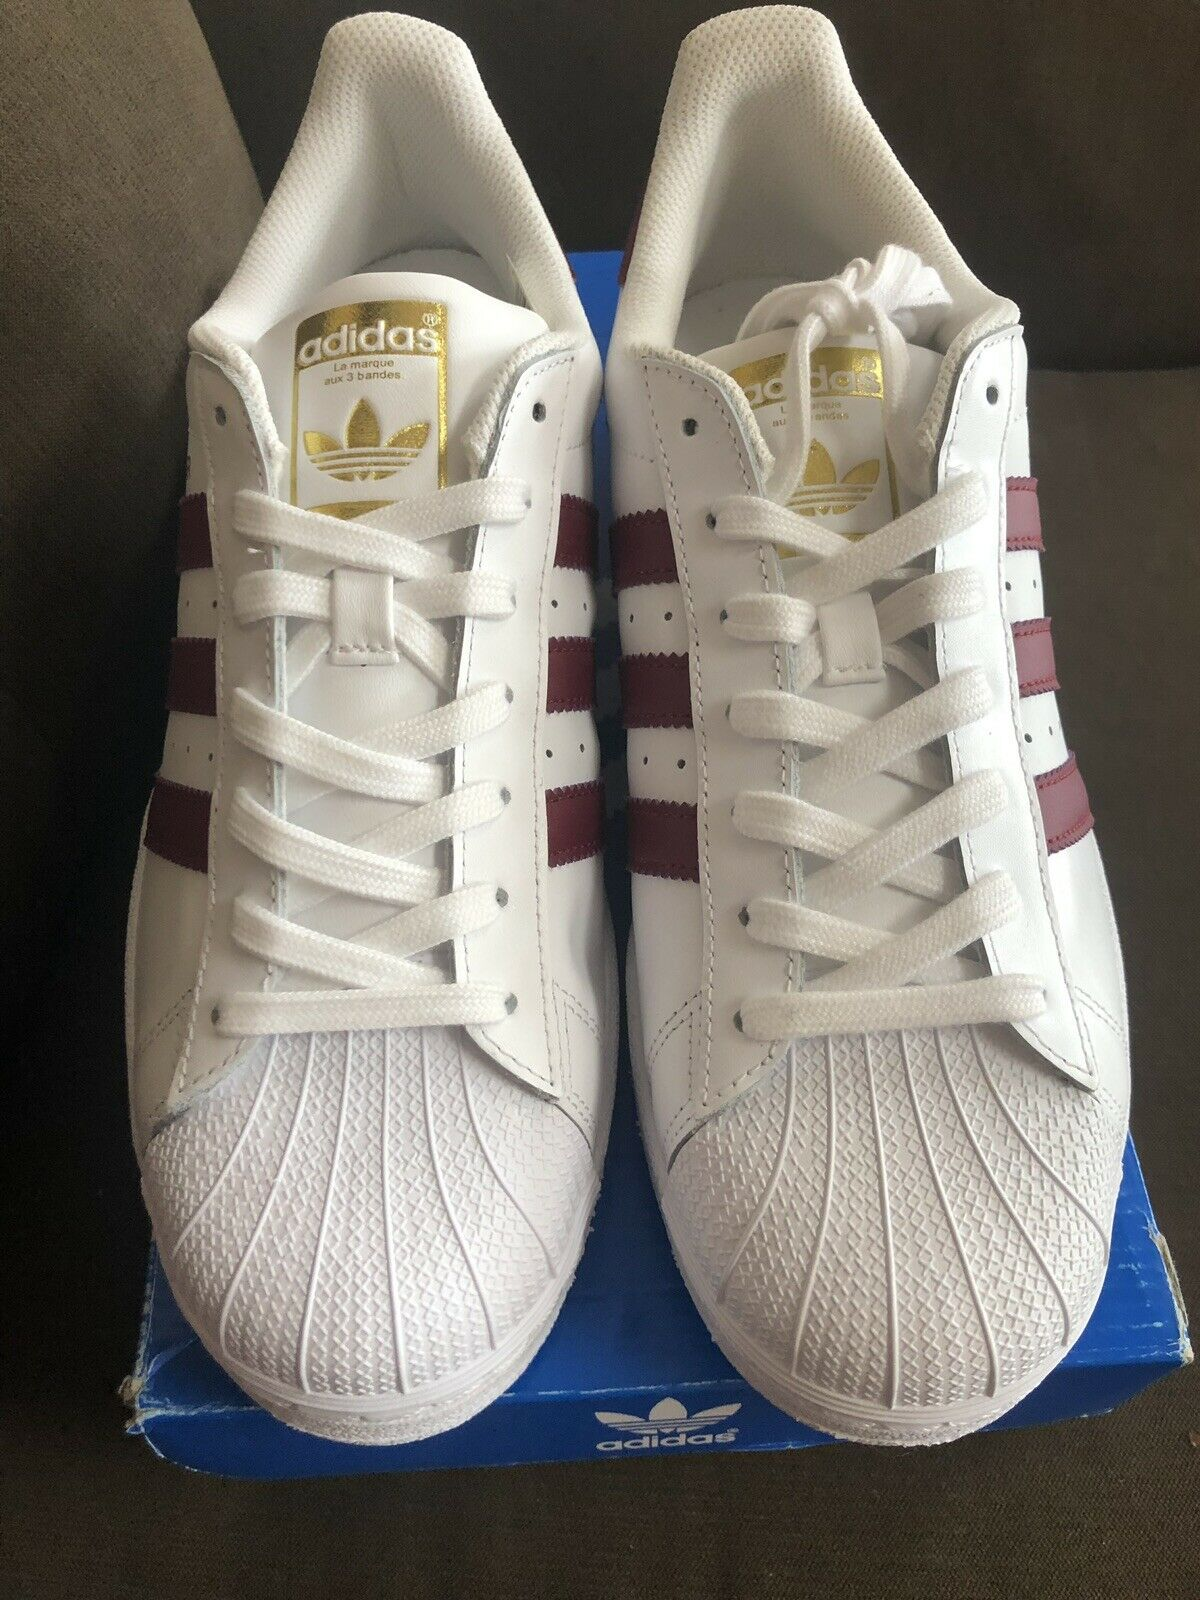 Adidas Men's Superstar Foundation Sneakers  BY3713 Size 9